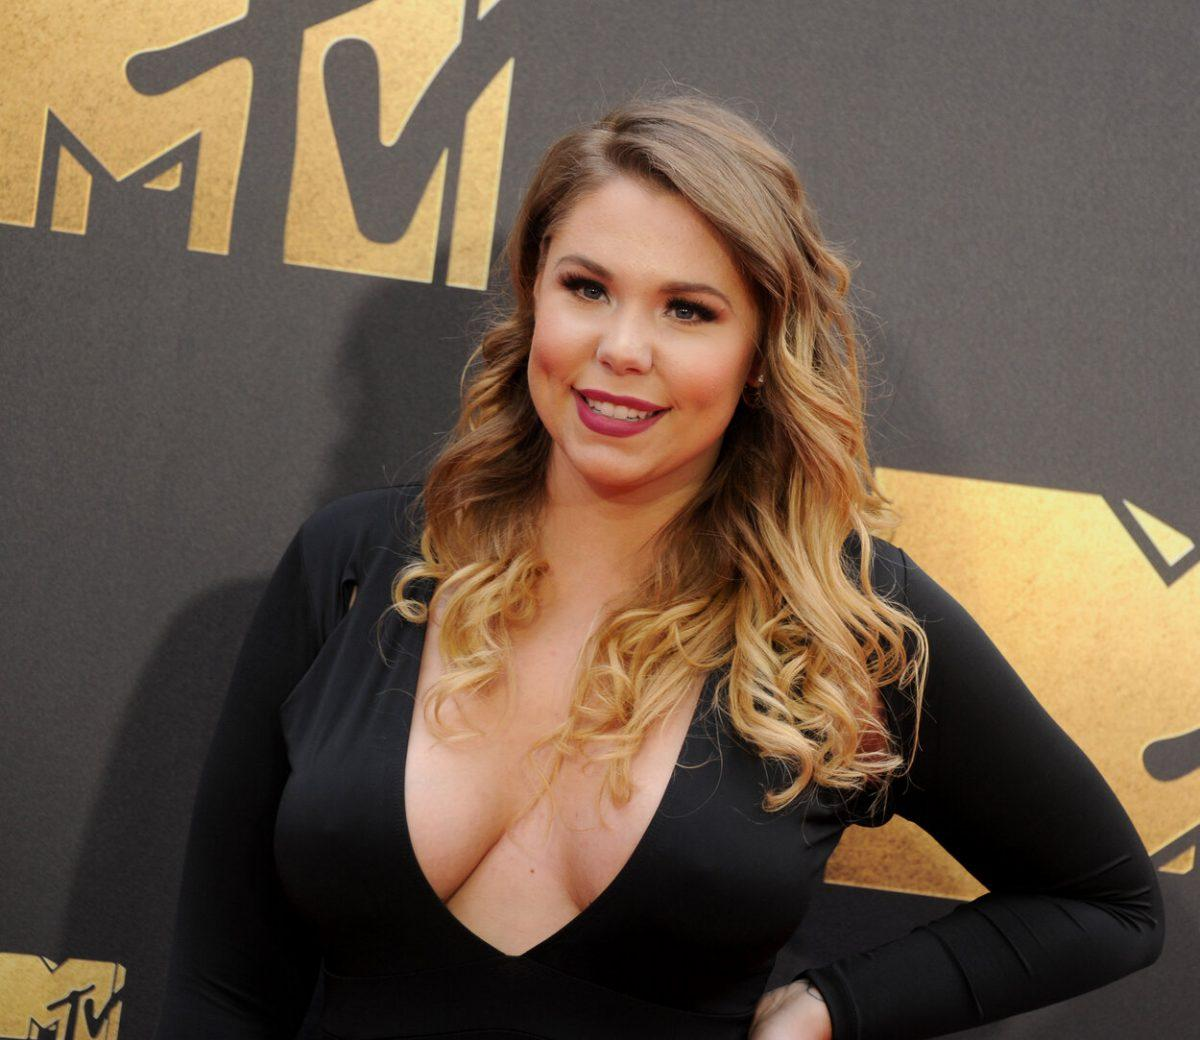 Kailyn Lowry aux MTV Movie Awards 2016